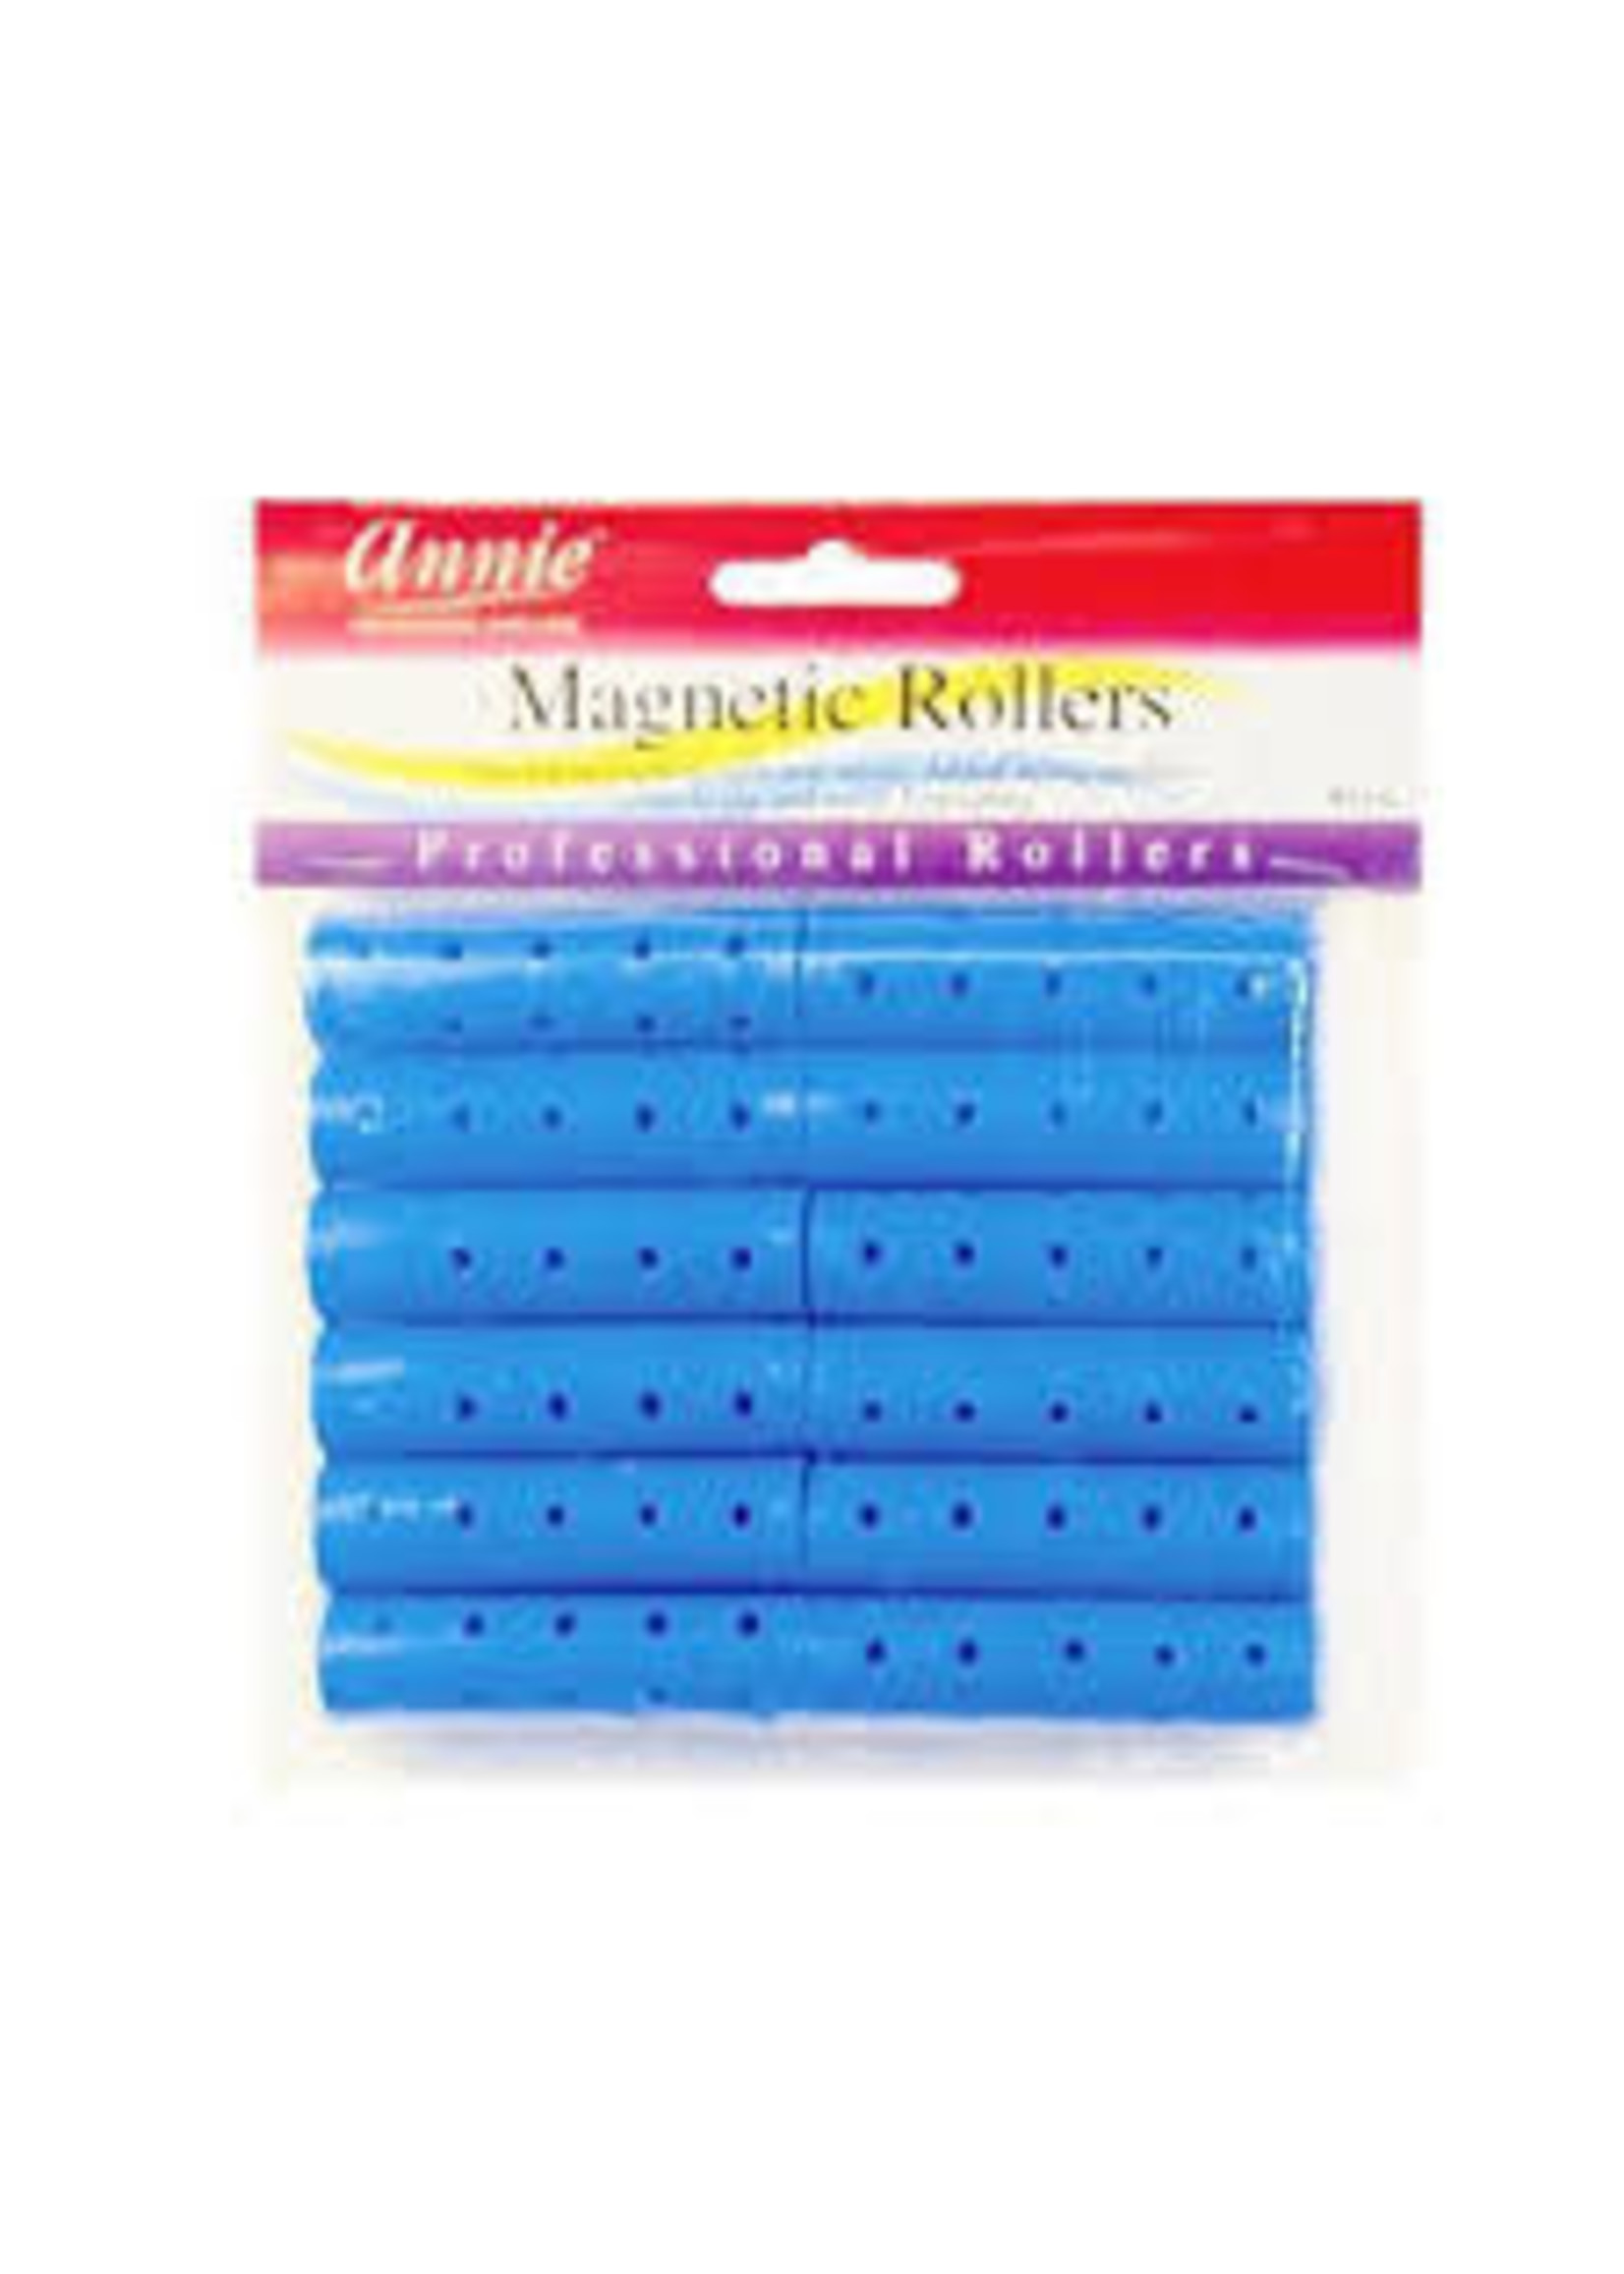 Annie Magnetic Rollers 12pk